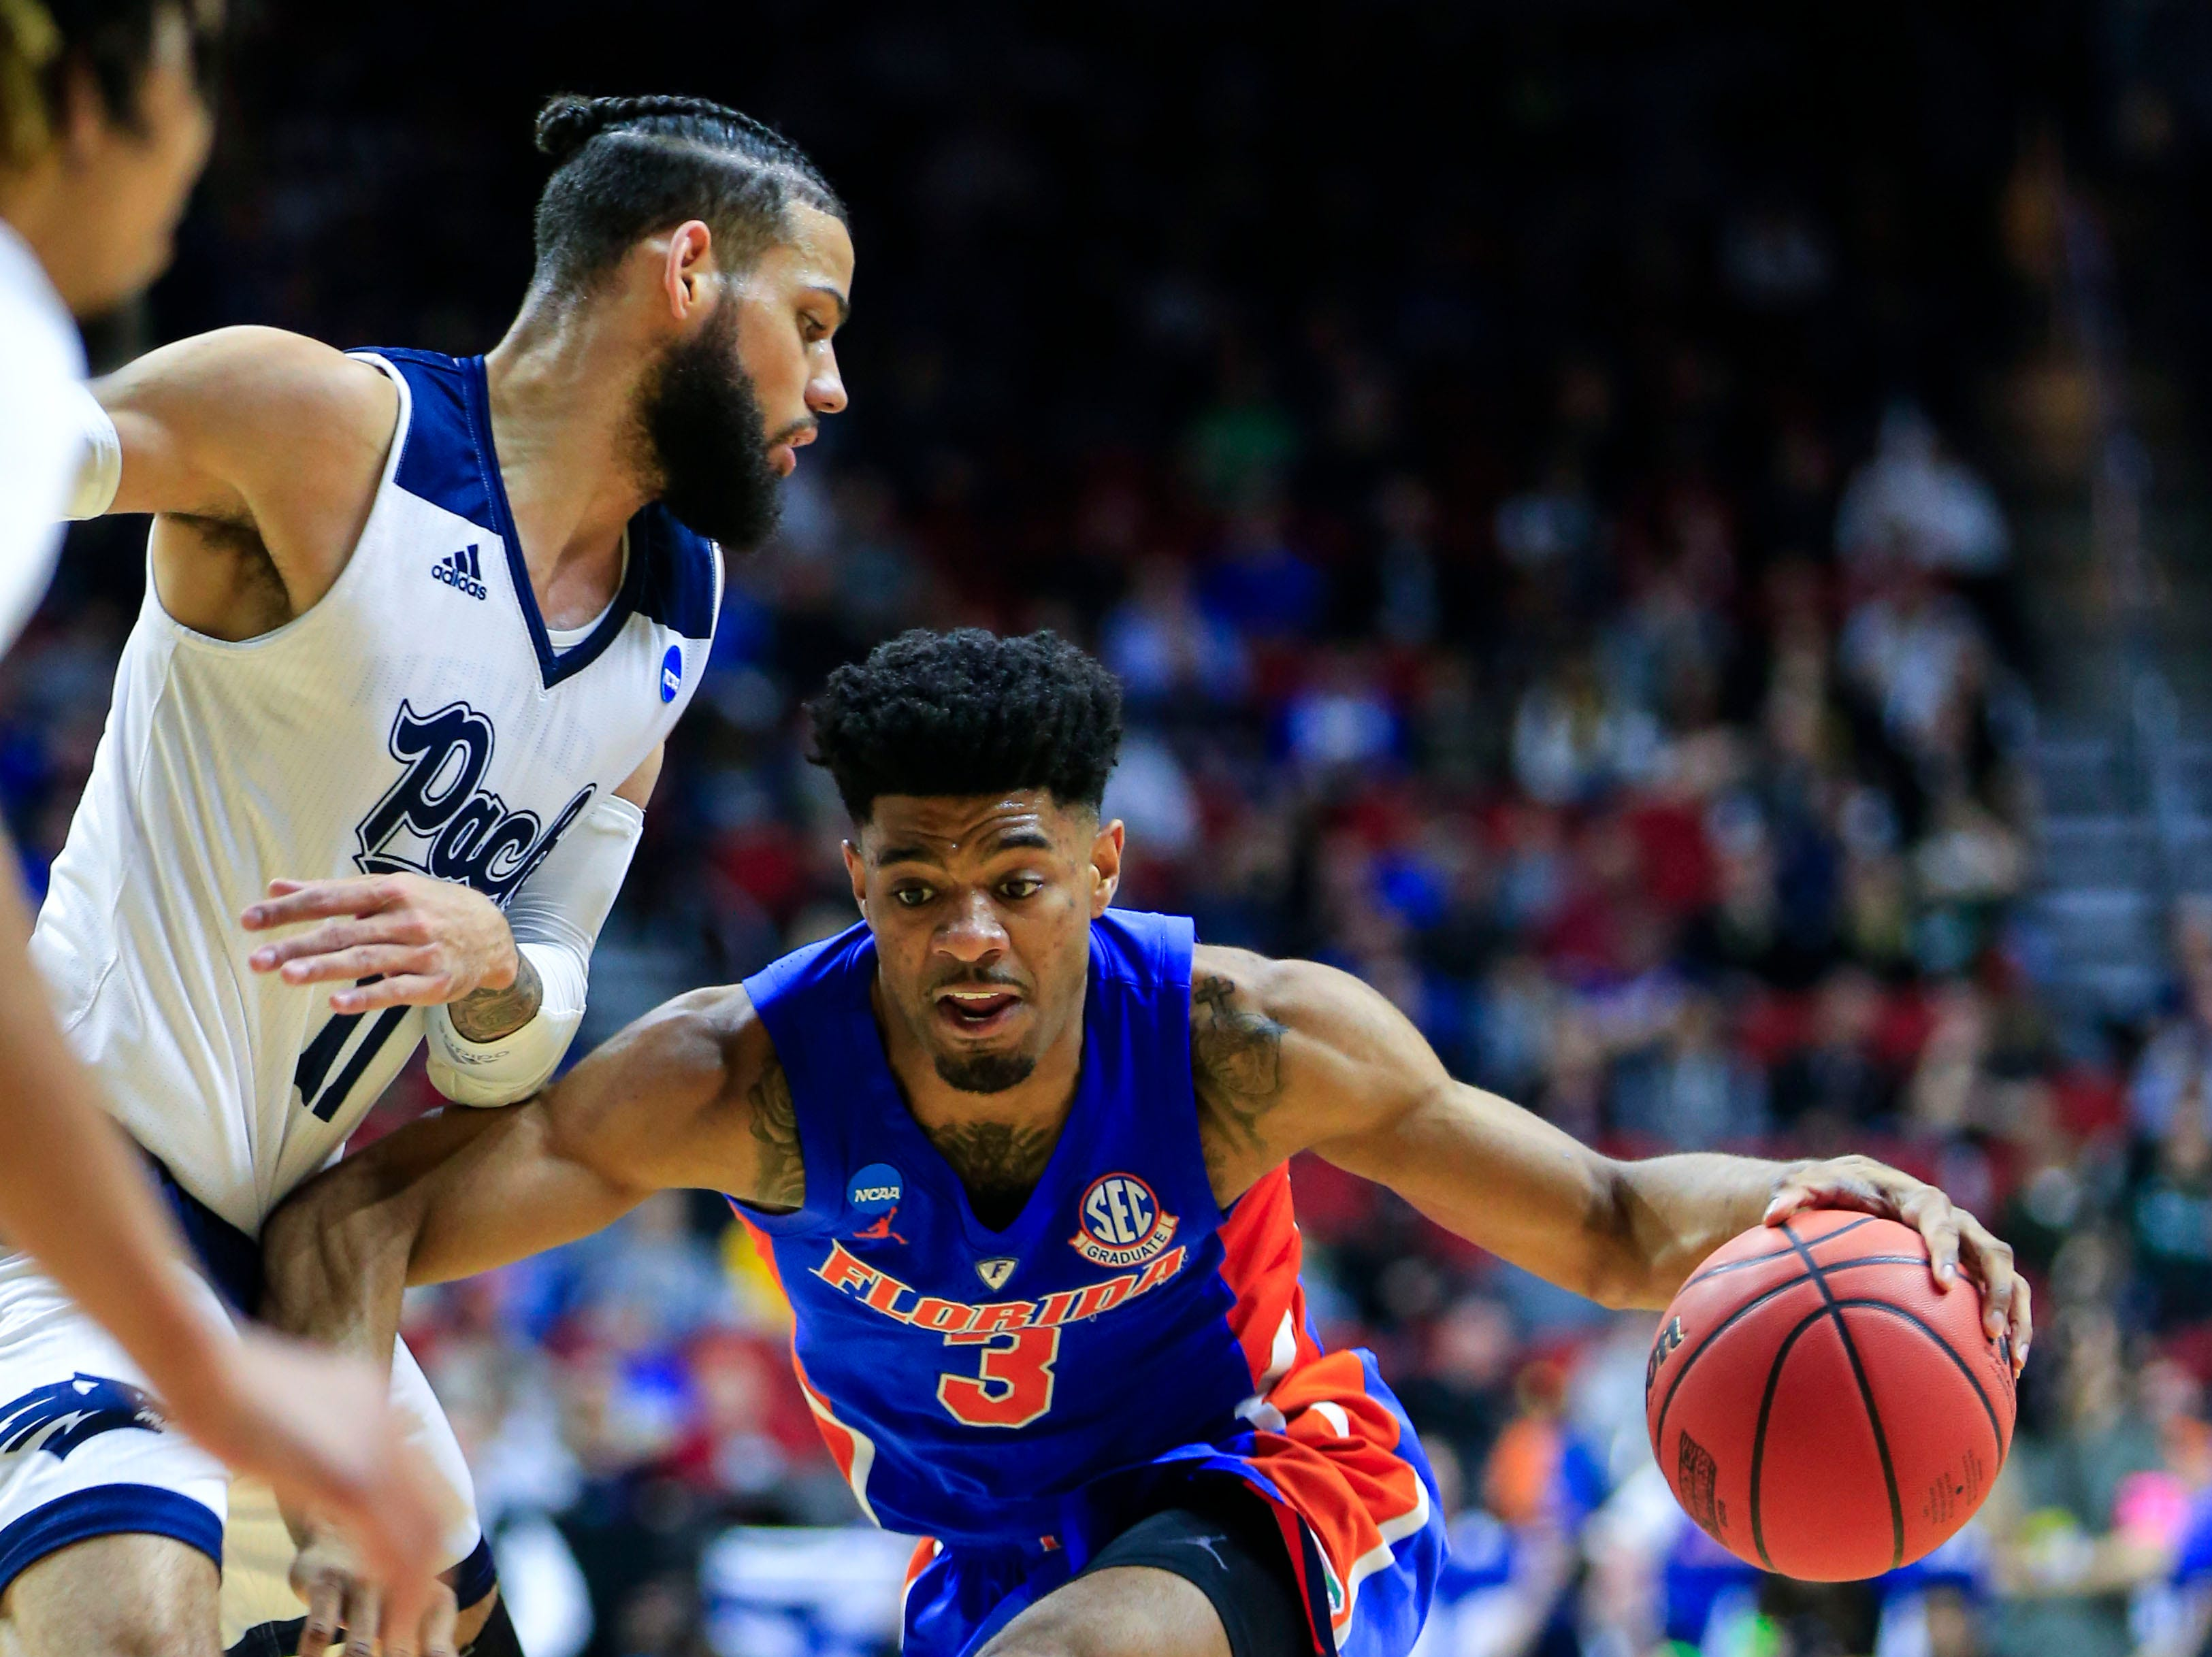 Florida guard Jalen Hudson drives to the basket as Nevada forward Cody Martin defends during their NCAA Division I Men's Basketball Championship First Round game on Thursday, March 21, 2019 in Des Moines.